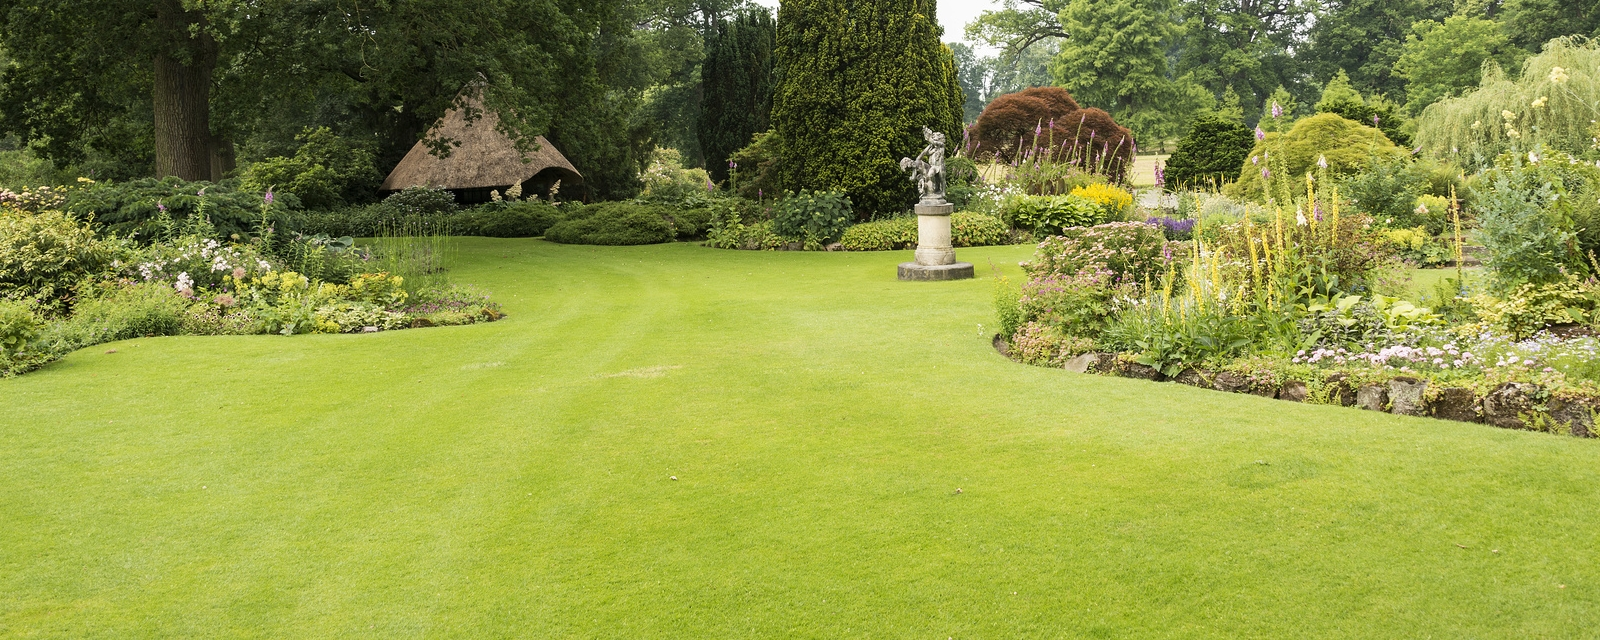 Professional garden services tree surgeons lawn care for Professional garden maintenance